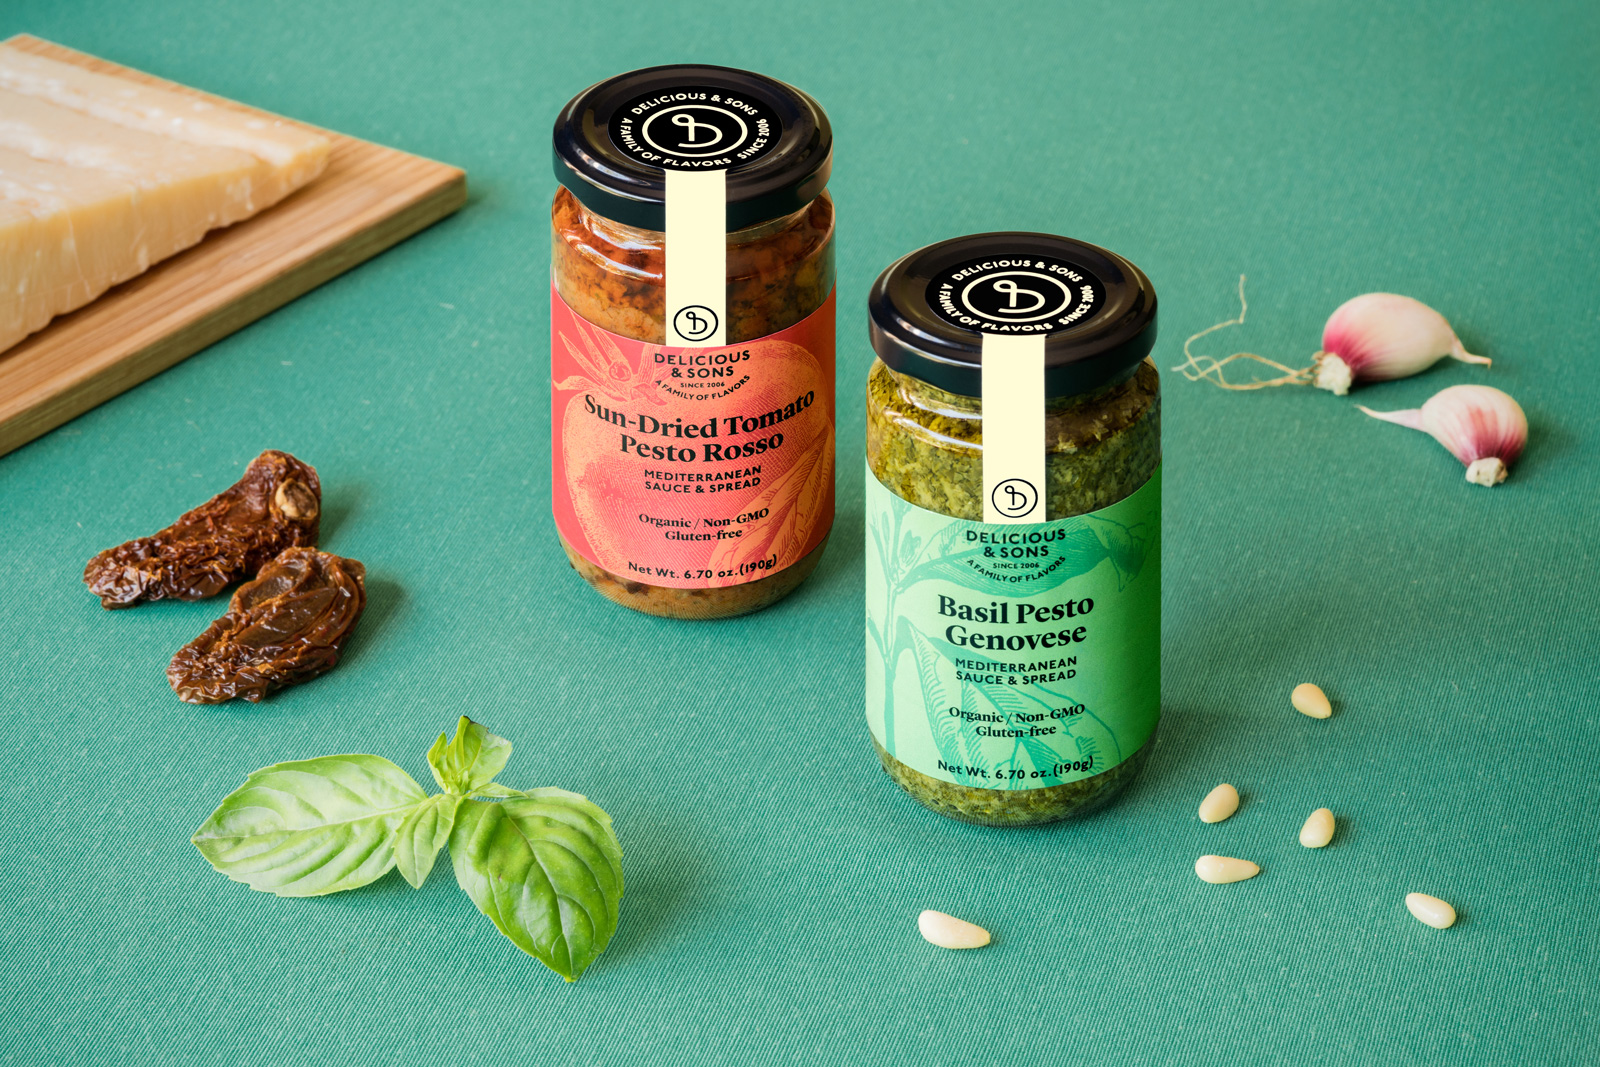 Pesto sauces — Delicious & Sons